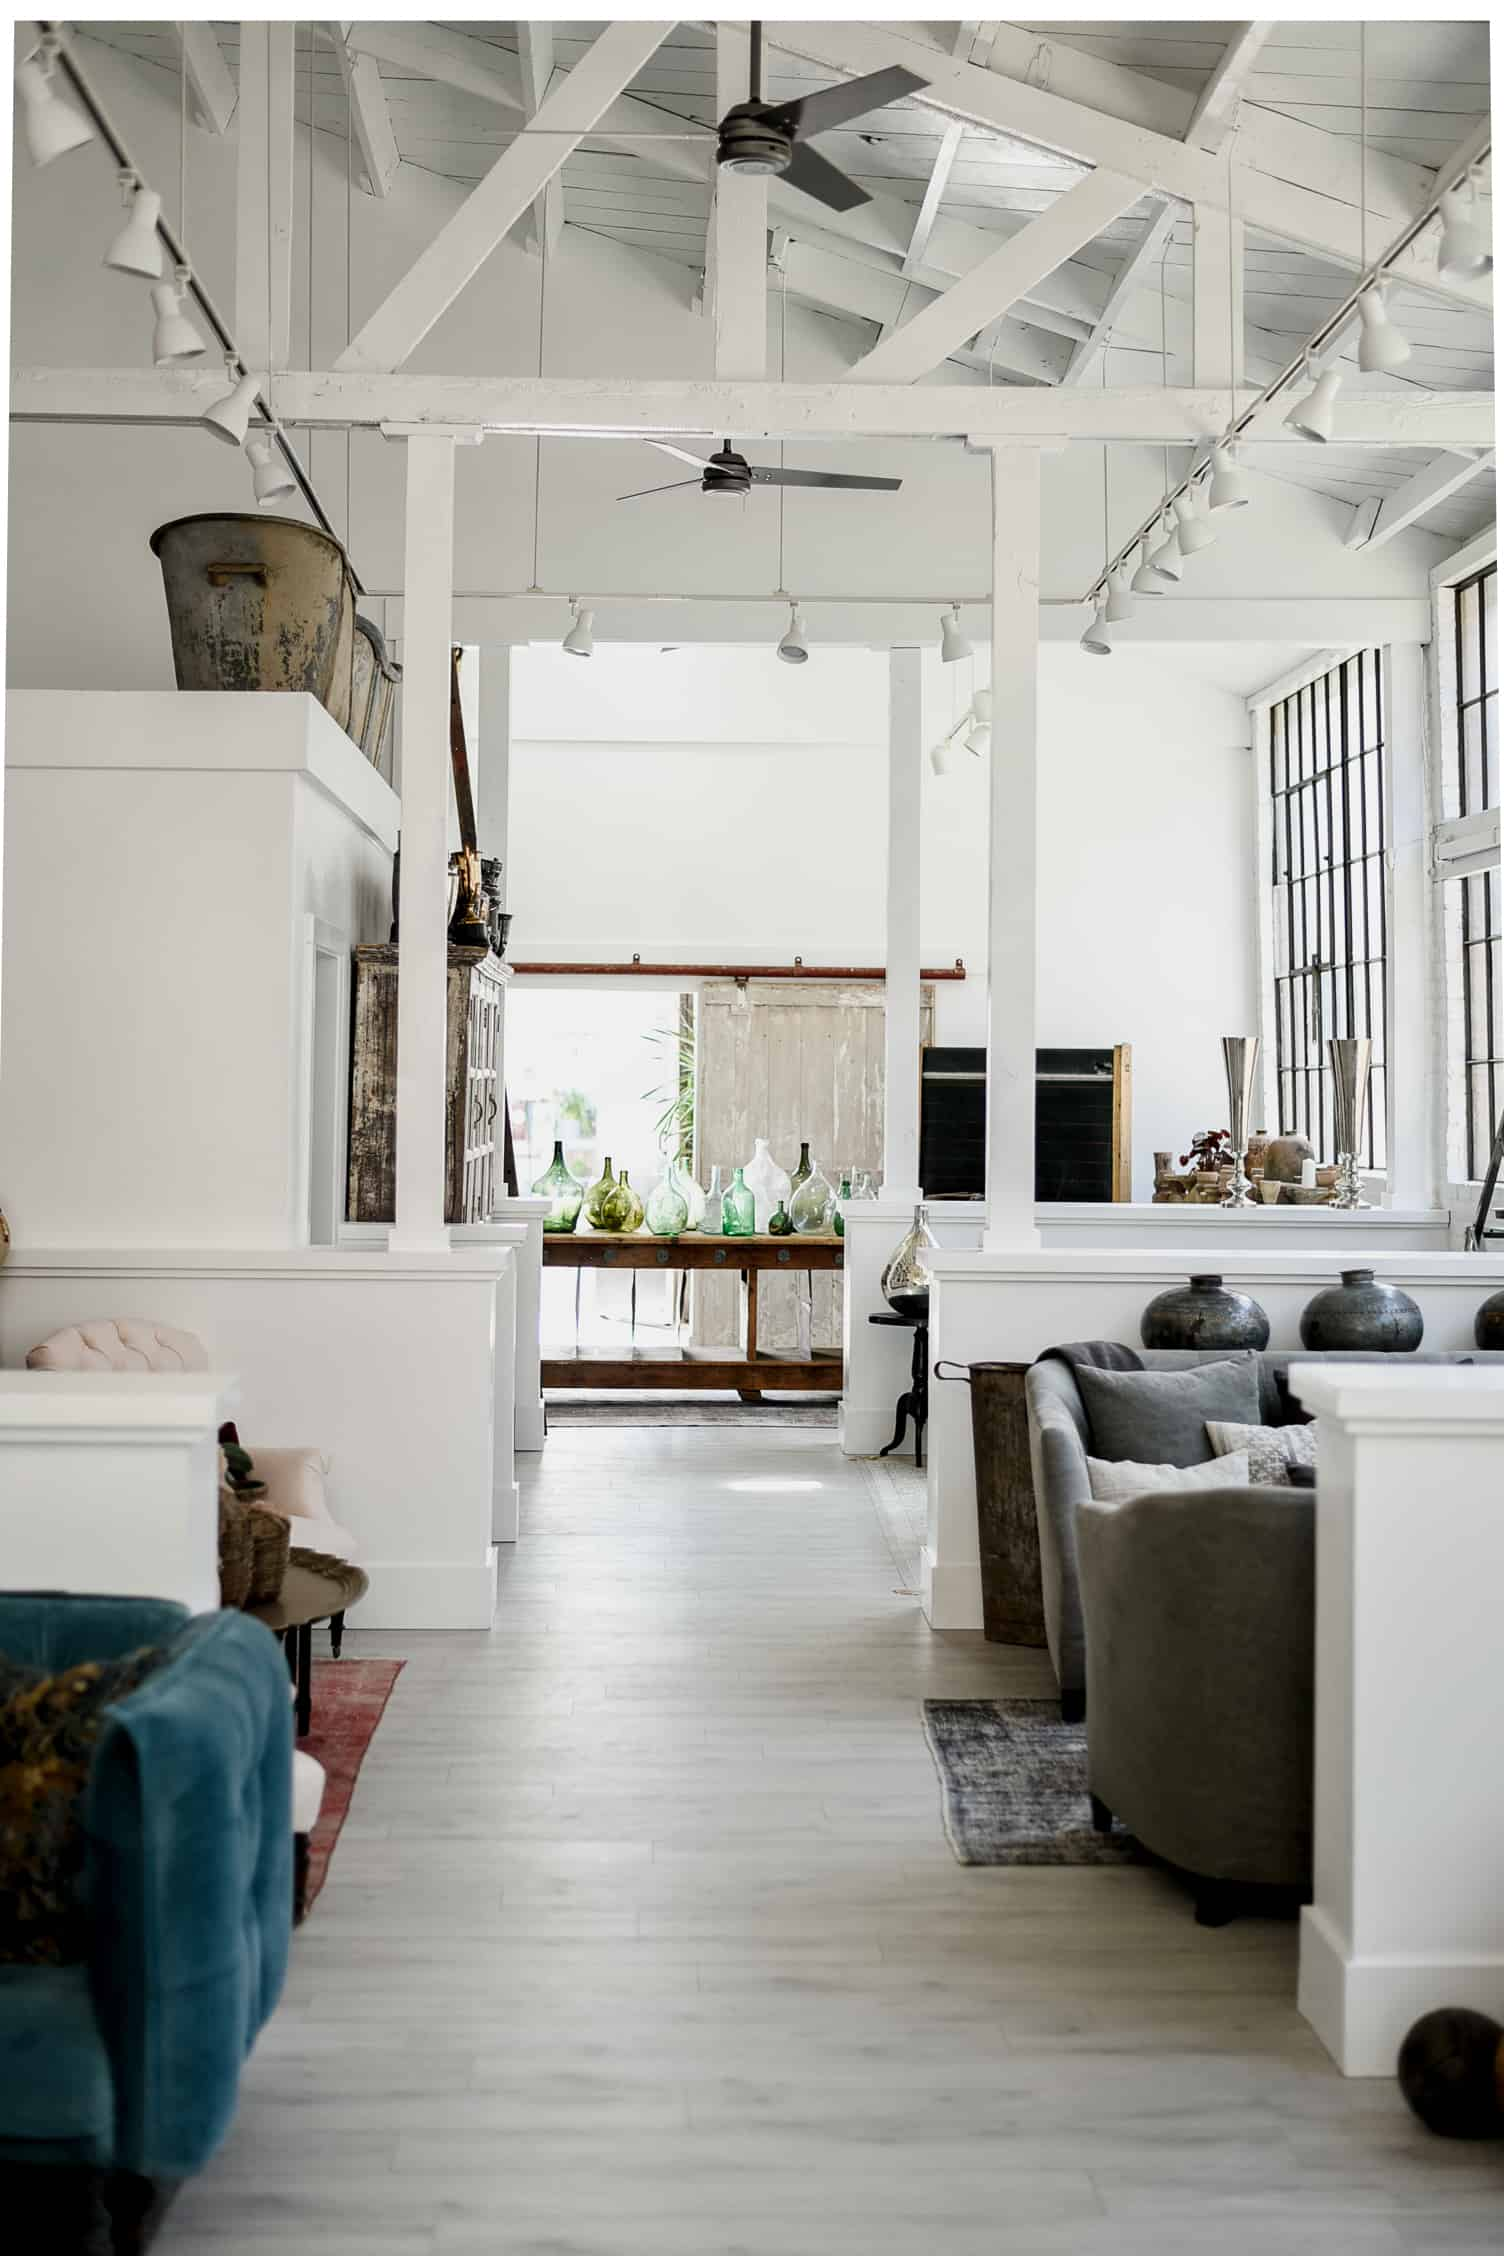 Found Vintage Rentals sources vintage furnishings from all over the world for weddings and events in California! Here's a peek at their brand new showroom & warehouse in Emeryville!